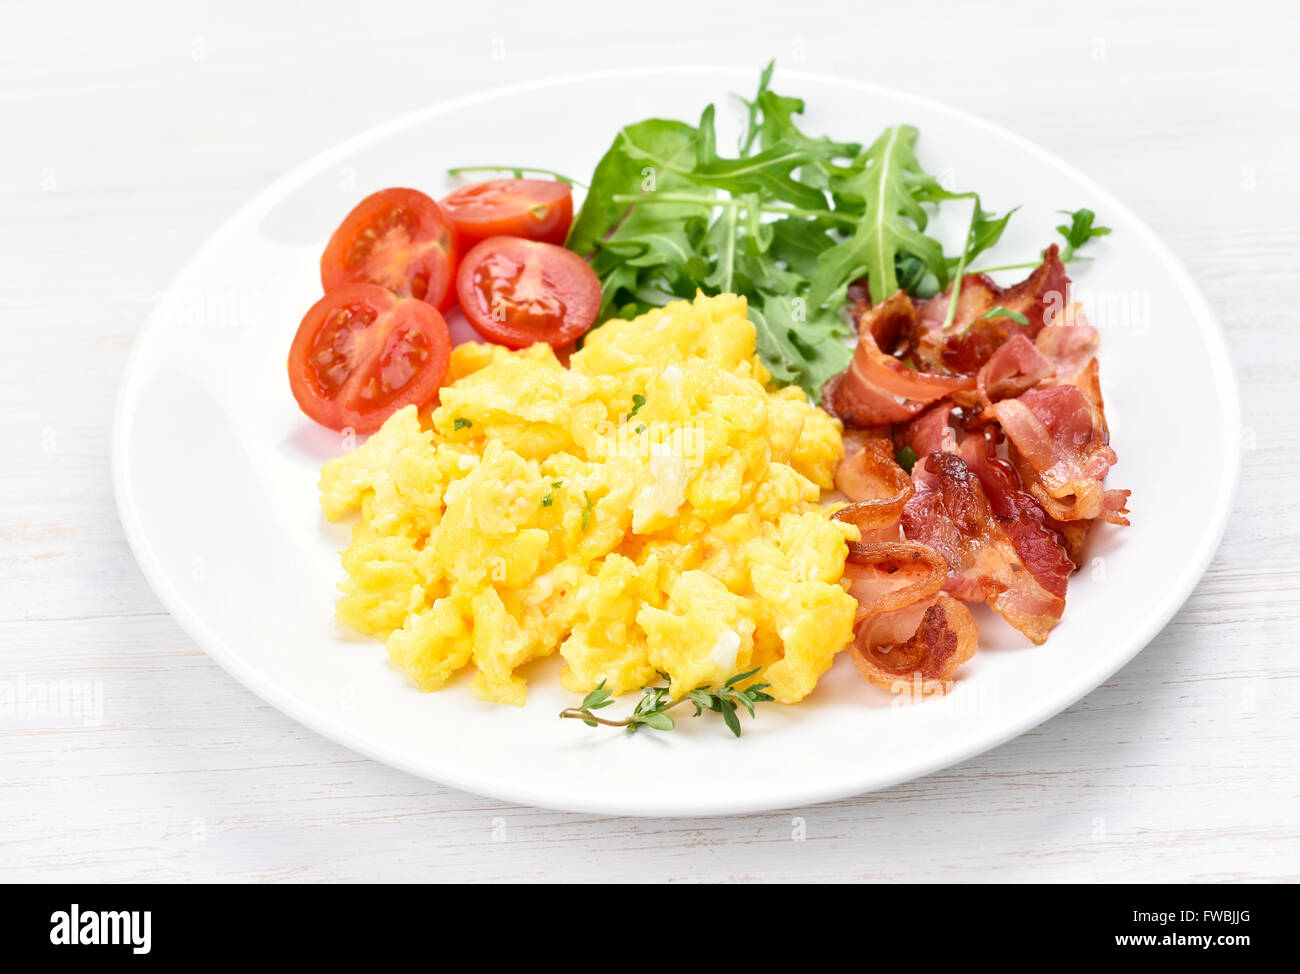 Scrambled eggs, bacon and vegetable salad, close up view - Stock Image